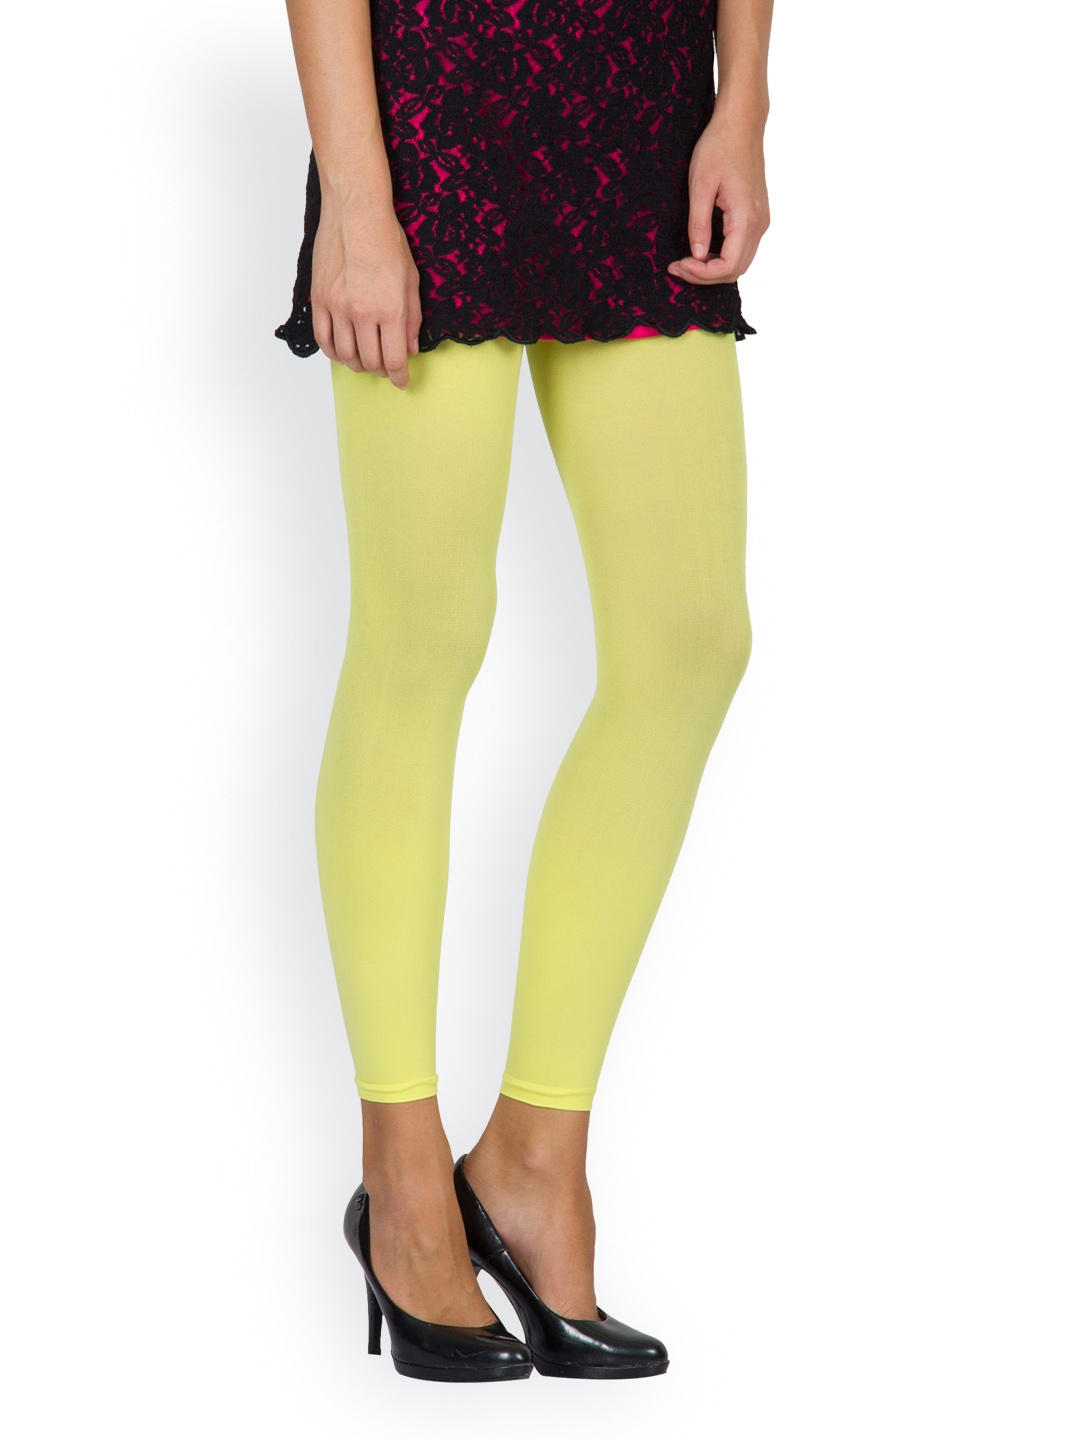 LEMON D'OR Leggings Soft Basic Solid Yoga Pants Full Length Many Colors. by LEMON D'OR. $ - $ $ 11 $ 12 99 Prime. FREE Shipping on eligible orders. Some sizes/colors are Prime eligible. 5 out of 5 stars 2. Save 30% with coupon. Product Features.